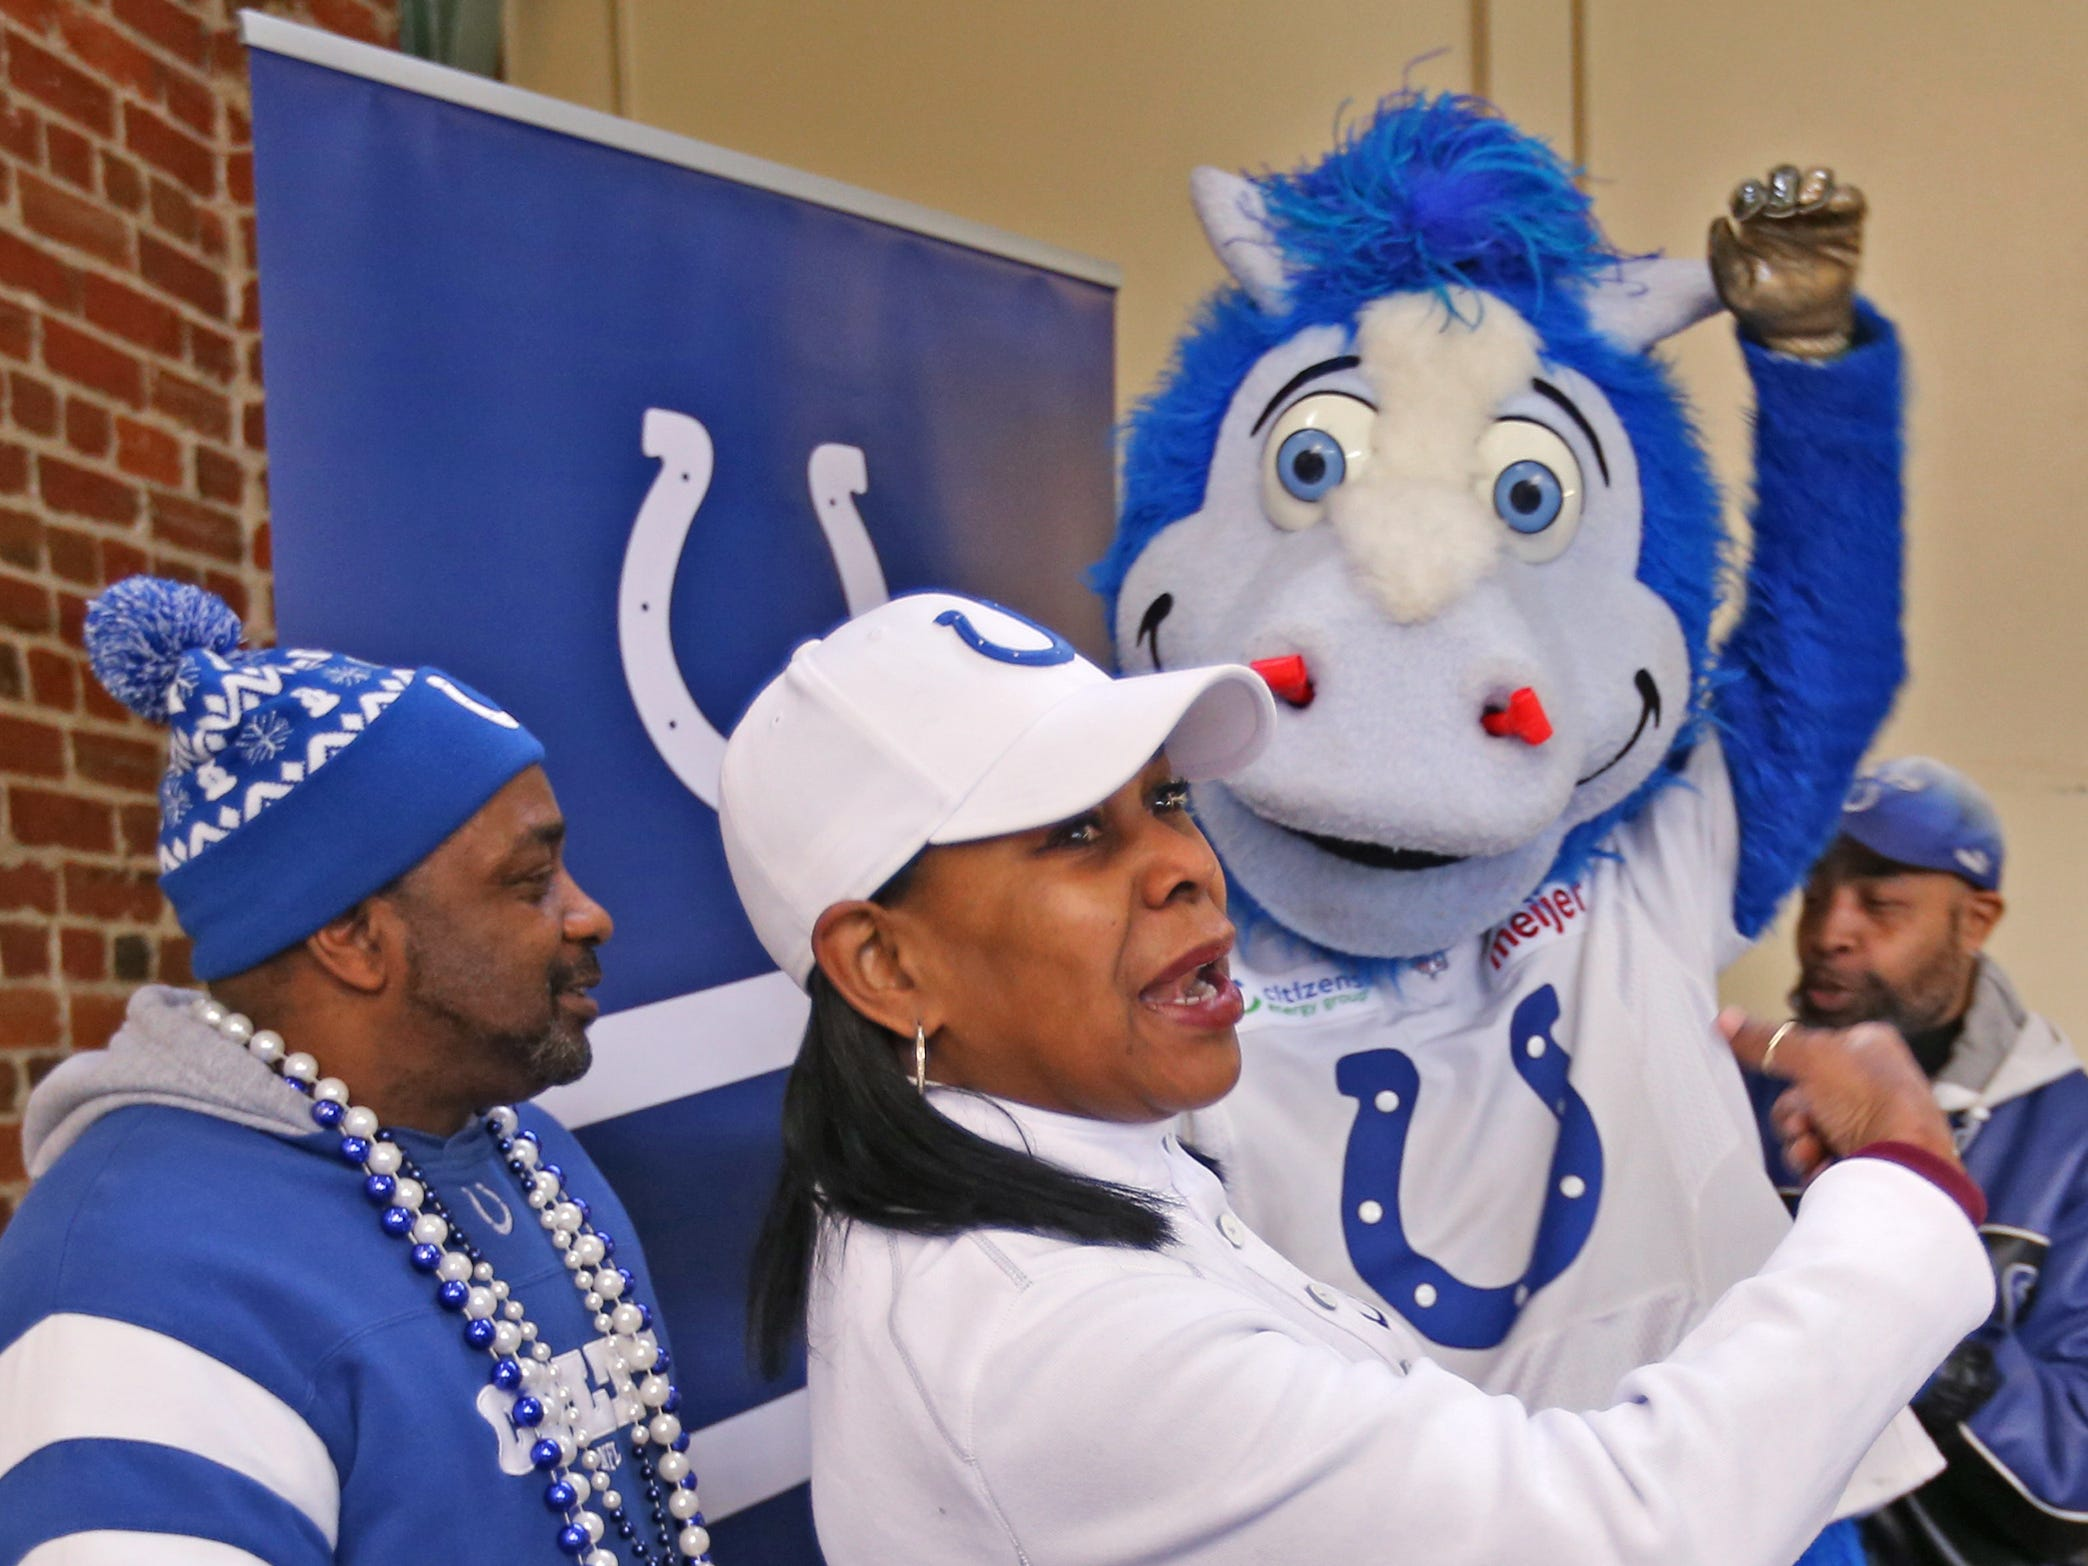 """Colts #1 Fan"" Cheryl McClendon, center, and her ""sidekicks"" George Logan, left, and David Woods laugh with Colts mascot Blue as they pose for photos at the City Market, Thursday, Jan. 10, 2019.  Fans could sign a 1-0 banner in support of the team.  The banner will be displayed for the team to see at the airport as they head off to their Kansas City playoff game."